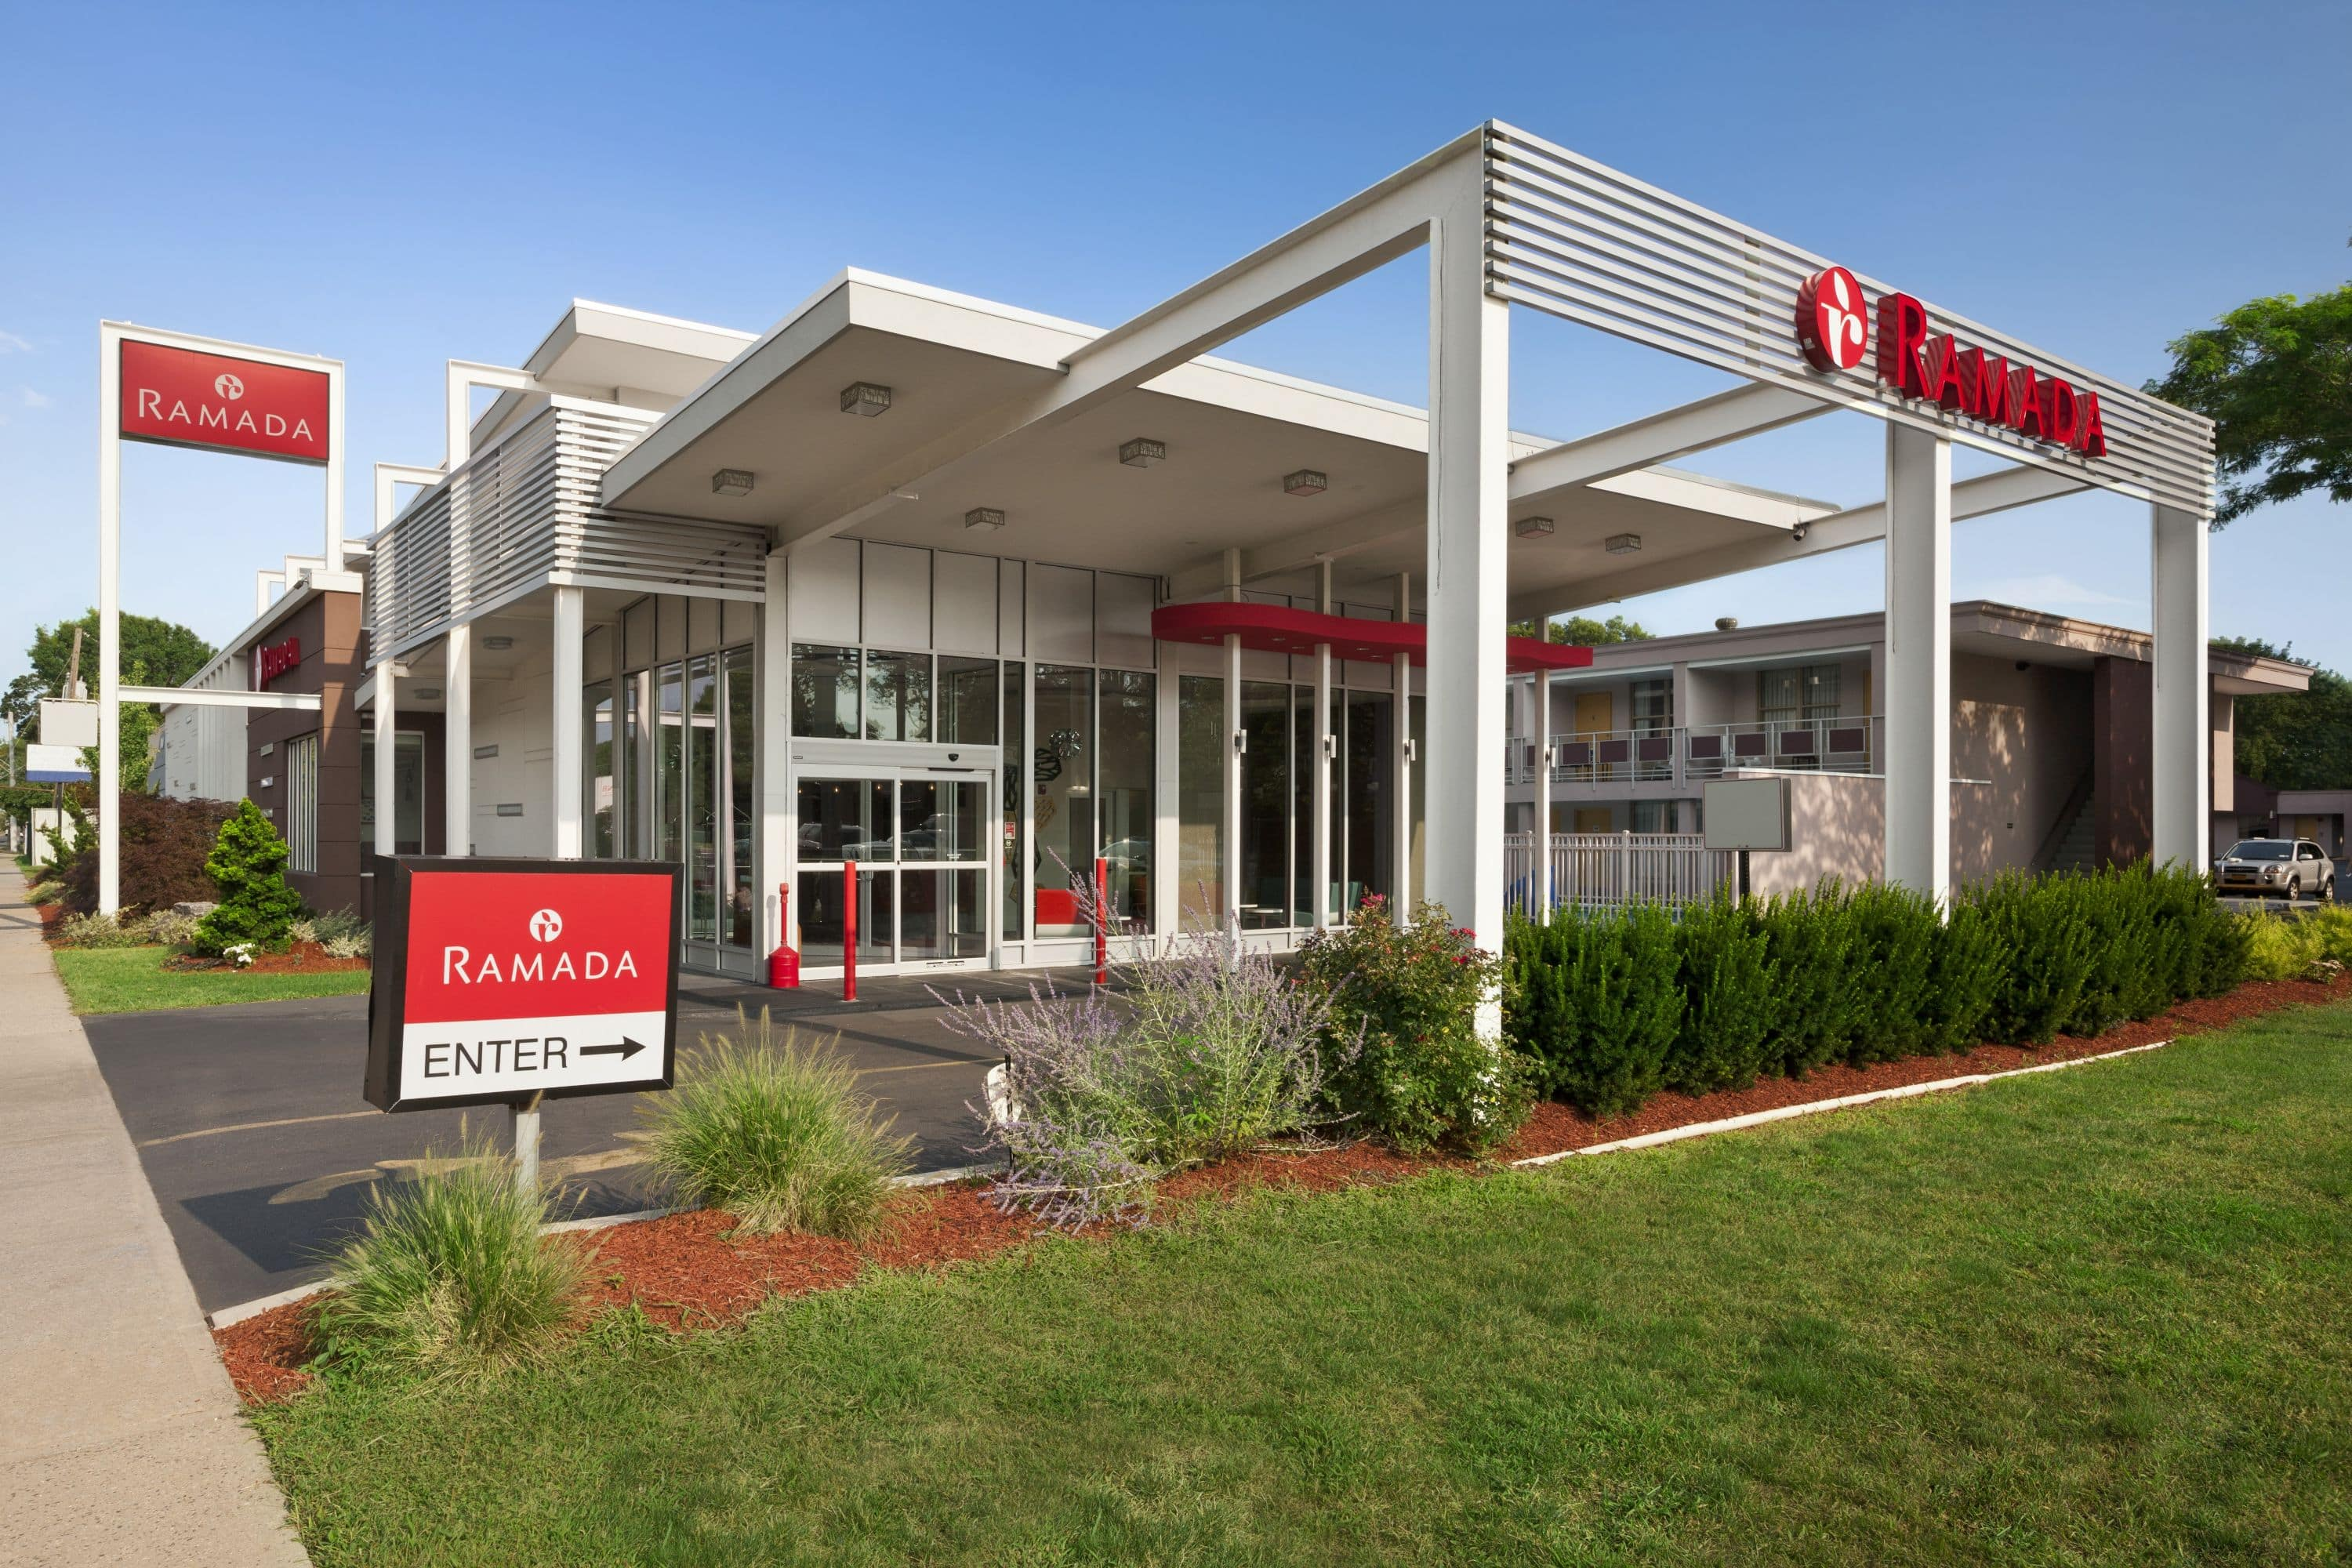 Cool Exterior Of Ramada Rockville Centre Hotel In New York With Hotels Near Hicksville Ny